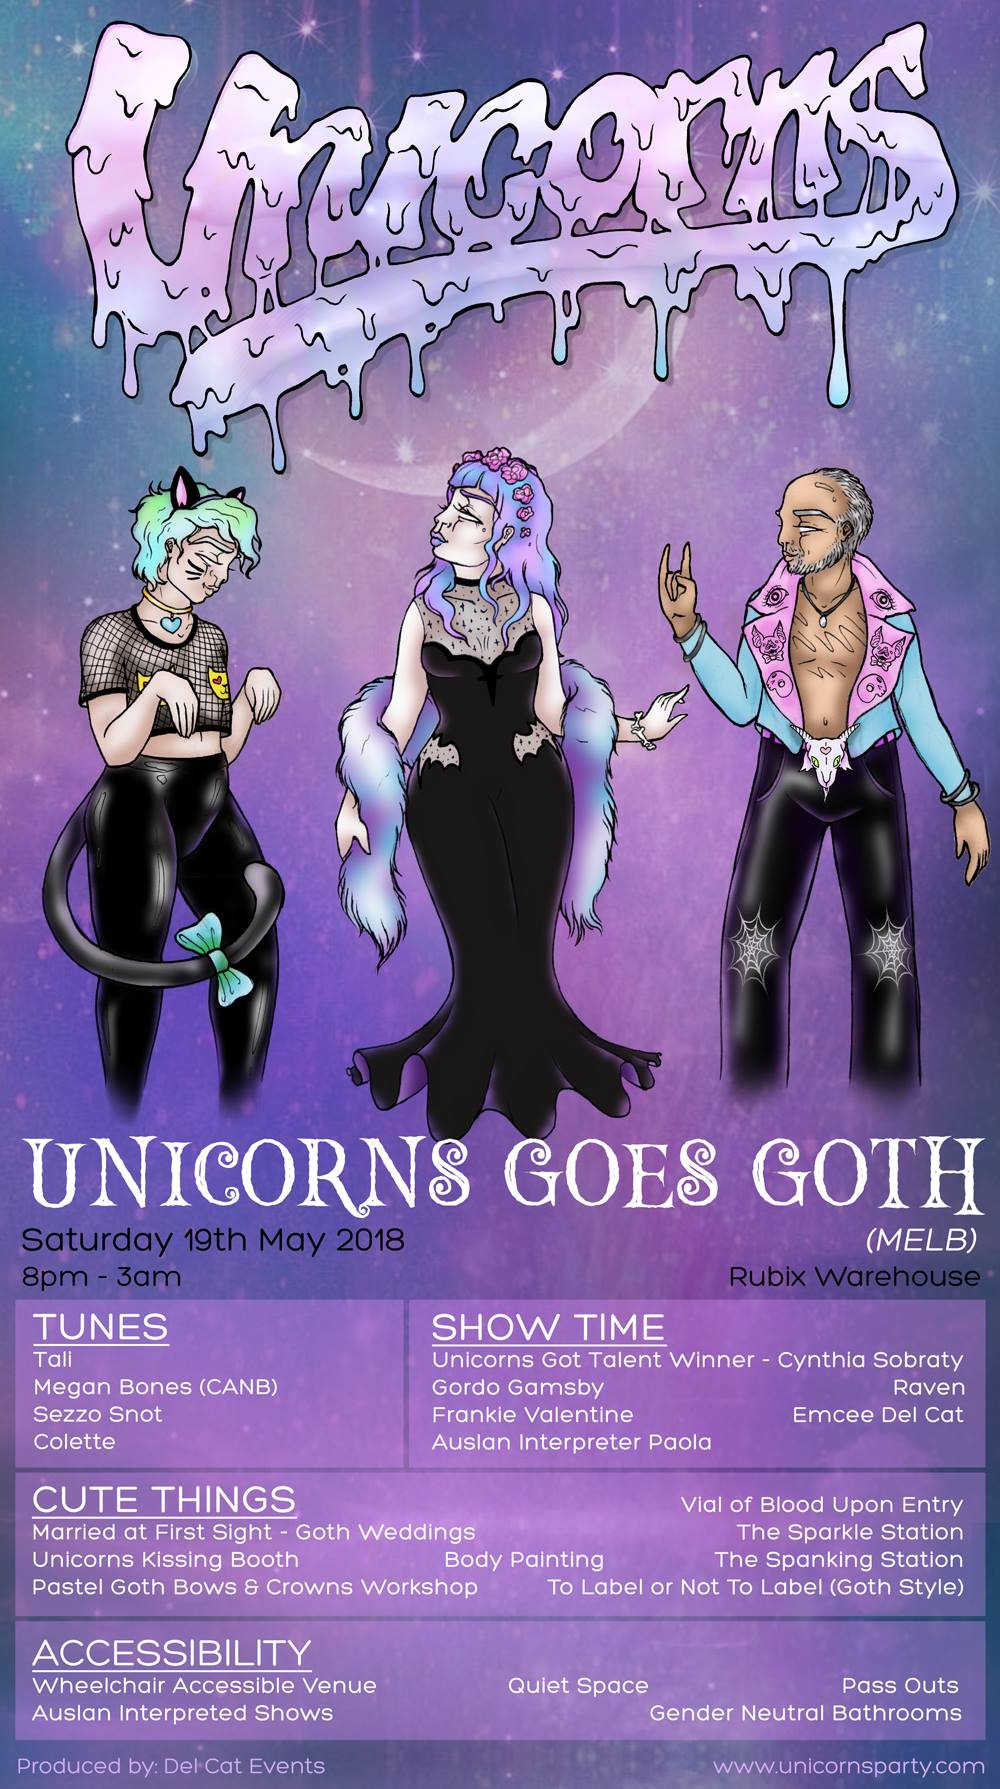 Unicorns -Goes Goth (MELB) - Saturday 19 May 2018Rubix Warehouse8pm - 3amSOLD OUT